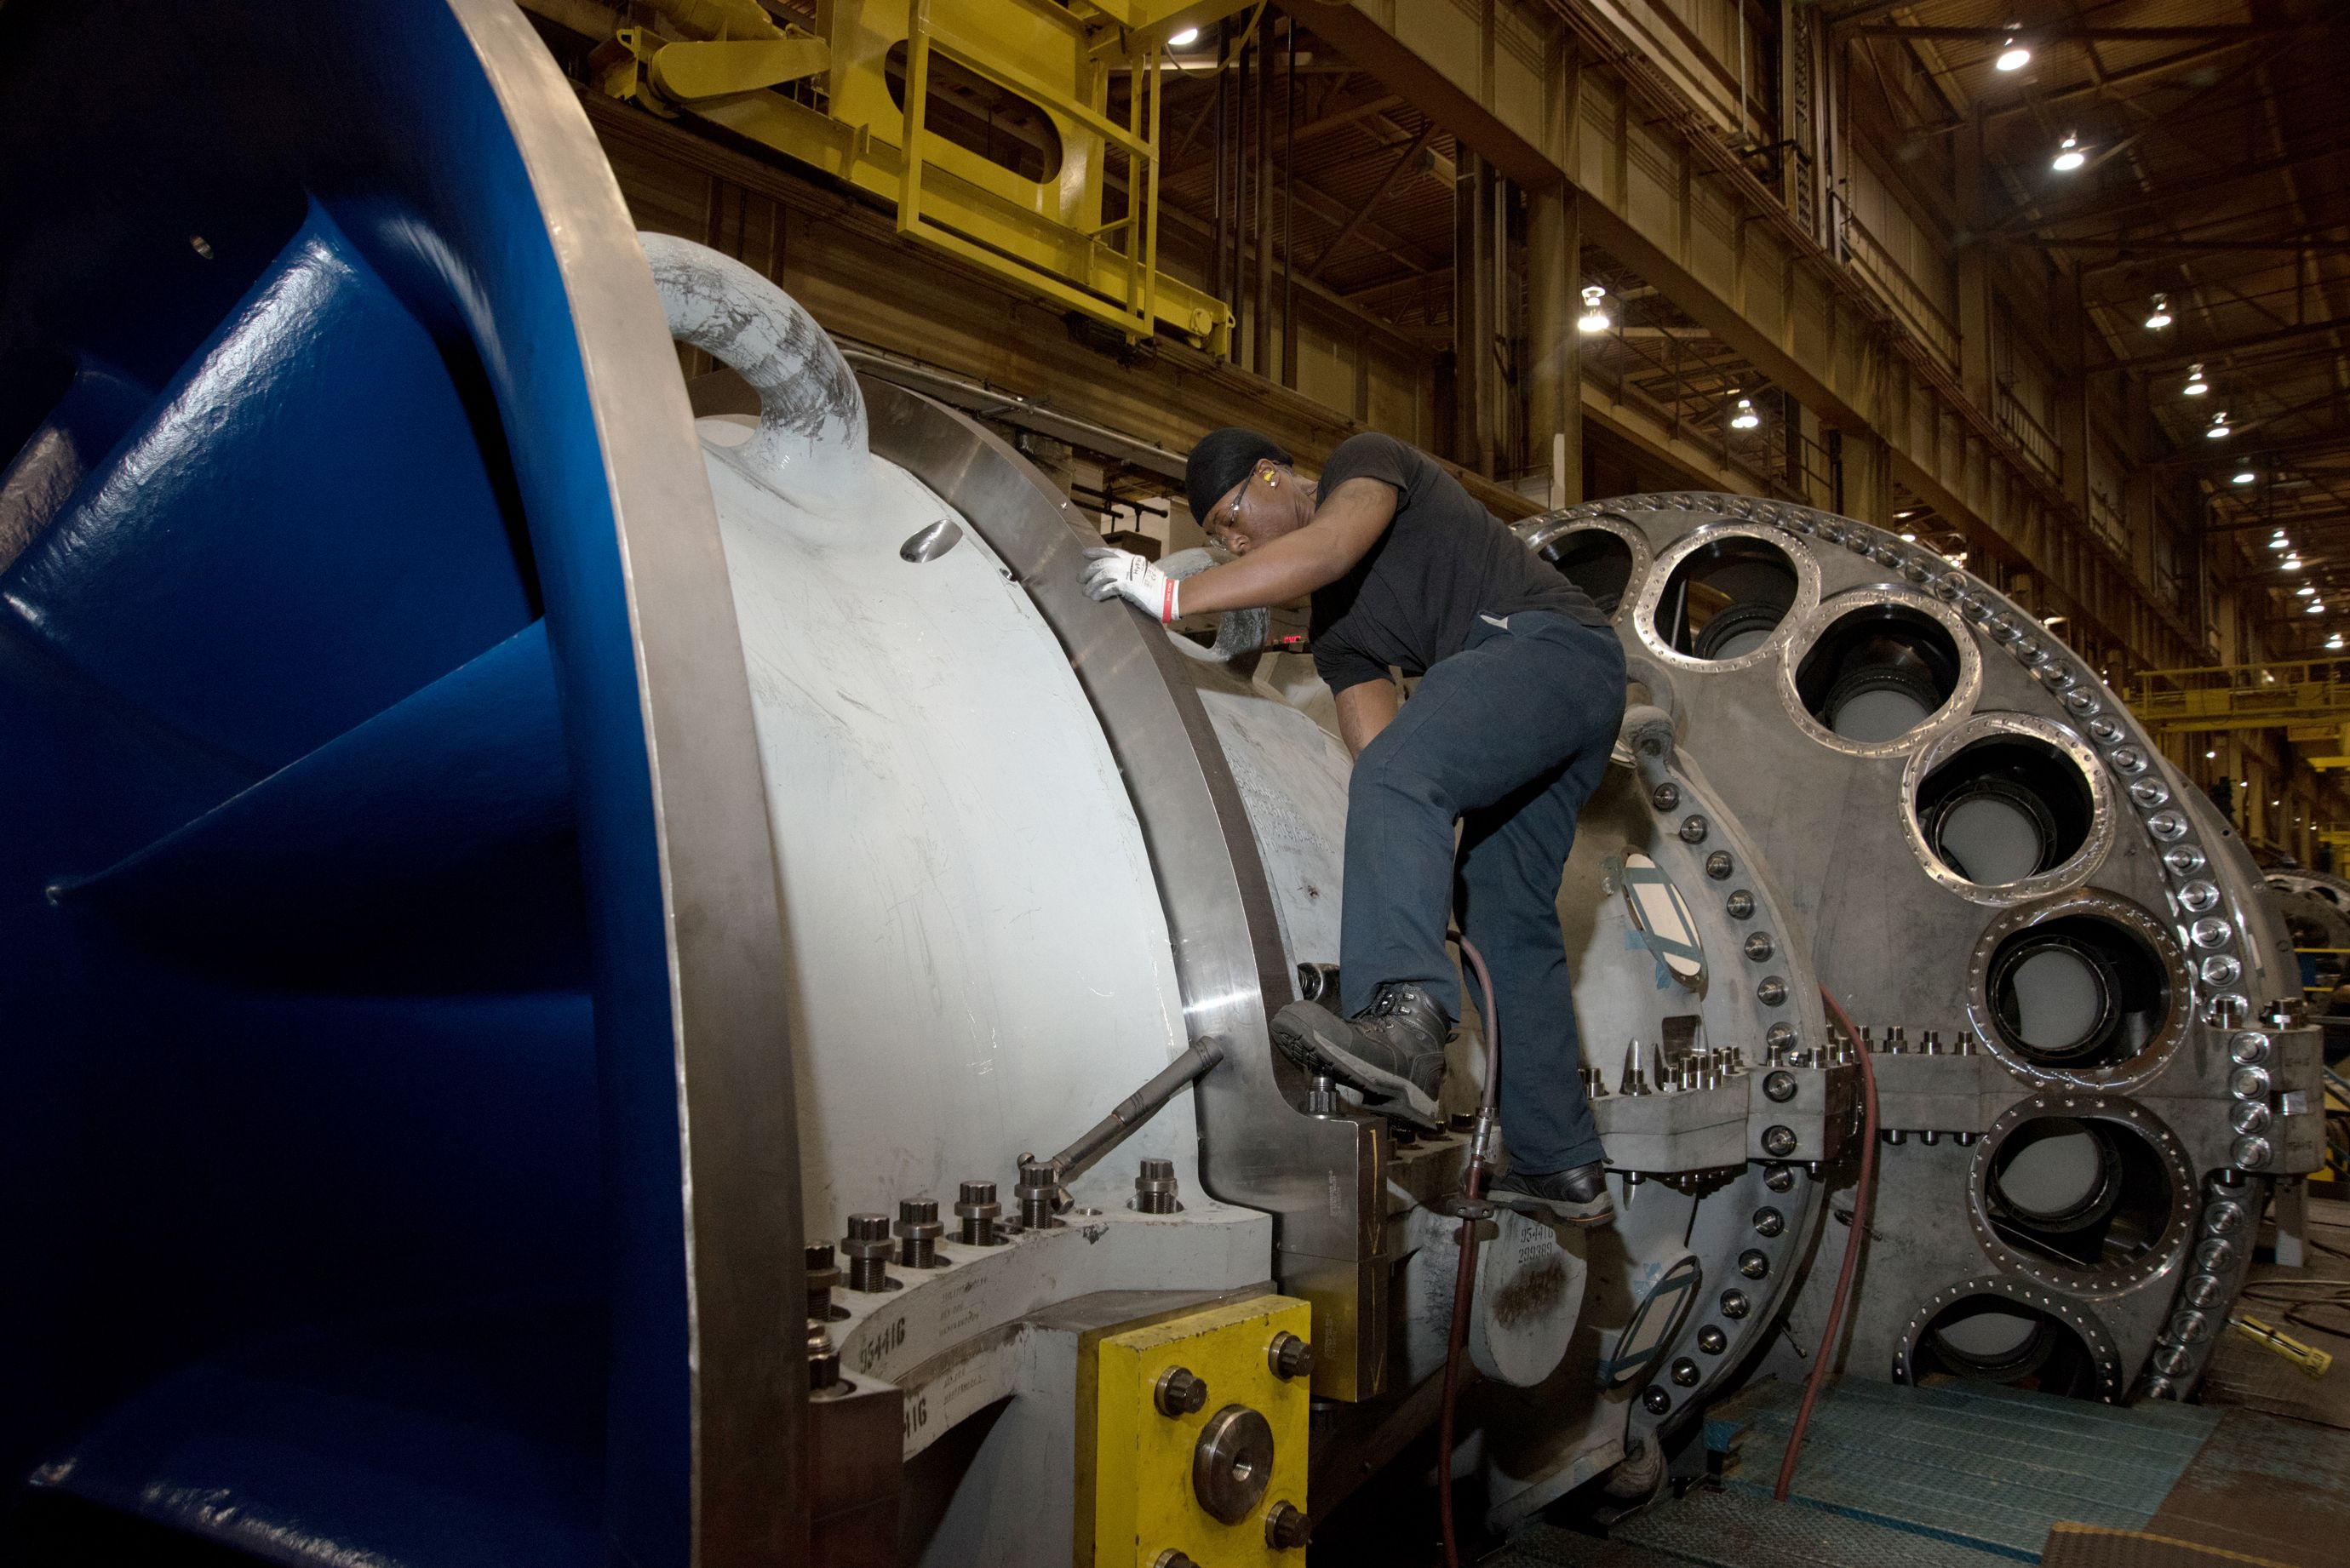 Worker at the GE gas turbine facility in Greenville.